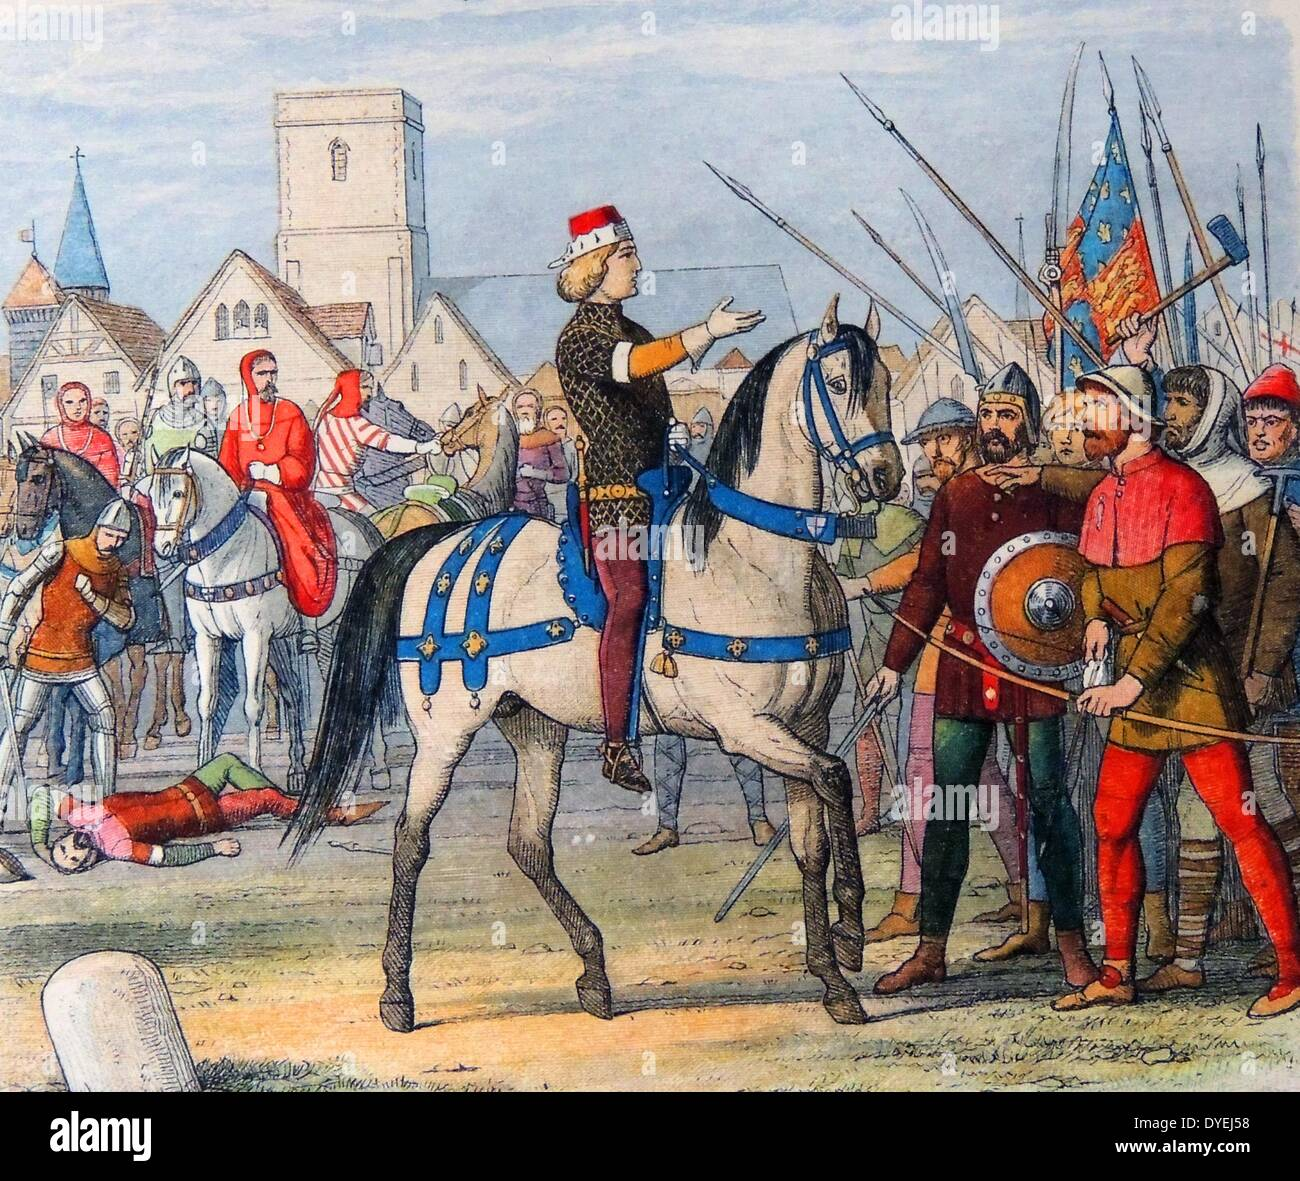 King Richard II of England assumes the command of the rebels 1381 A.D. - Stock Image